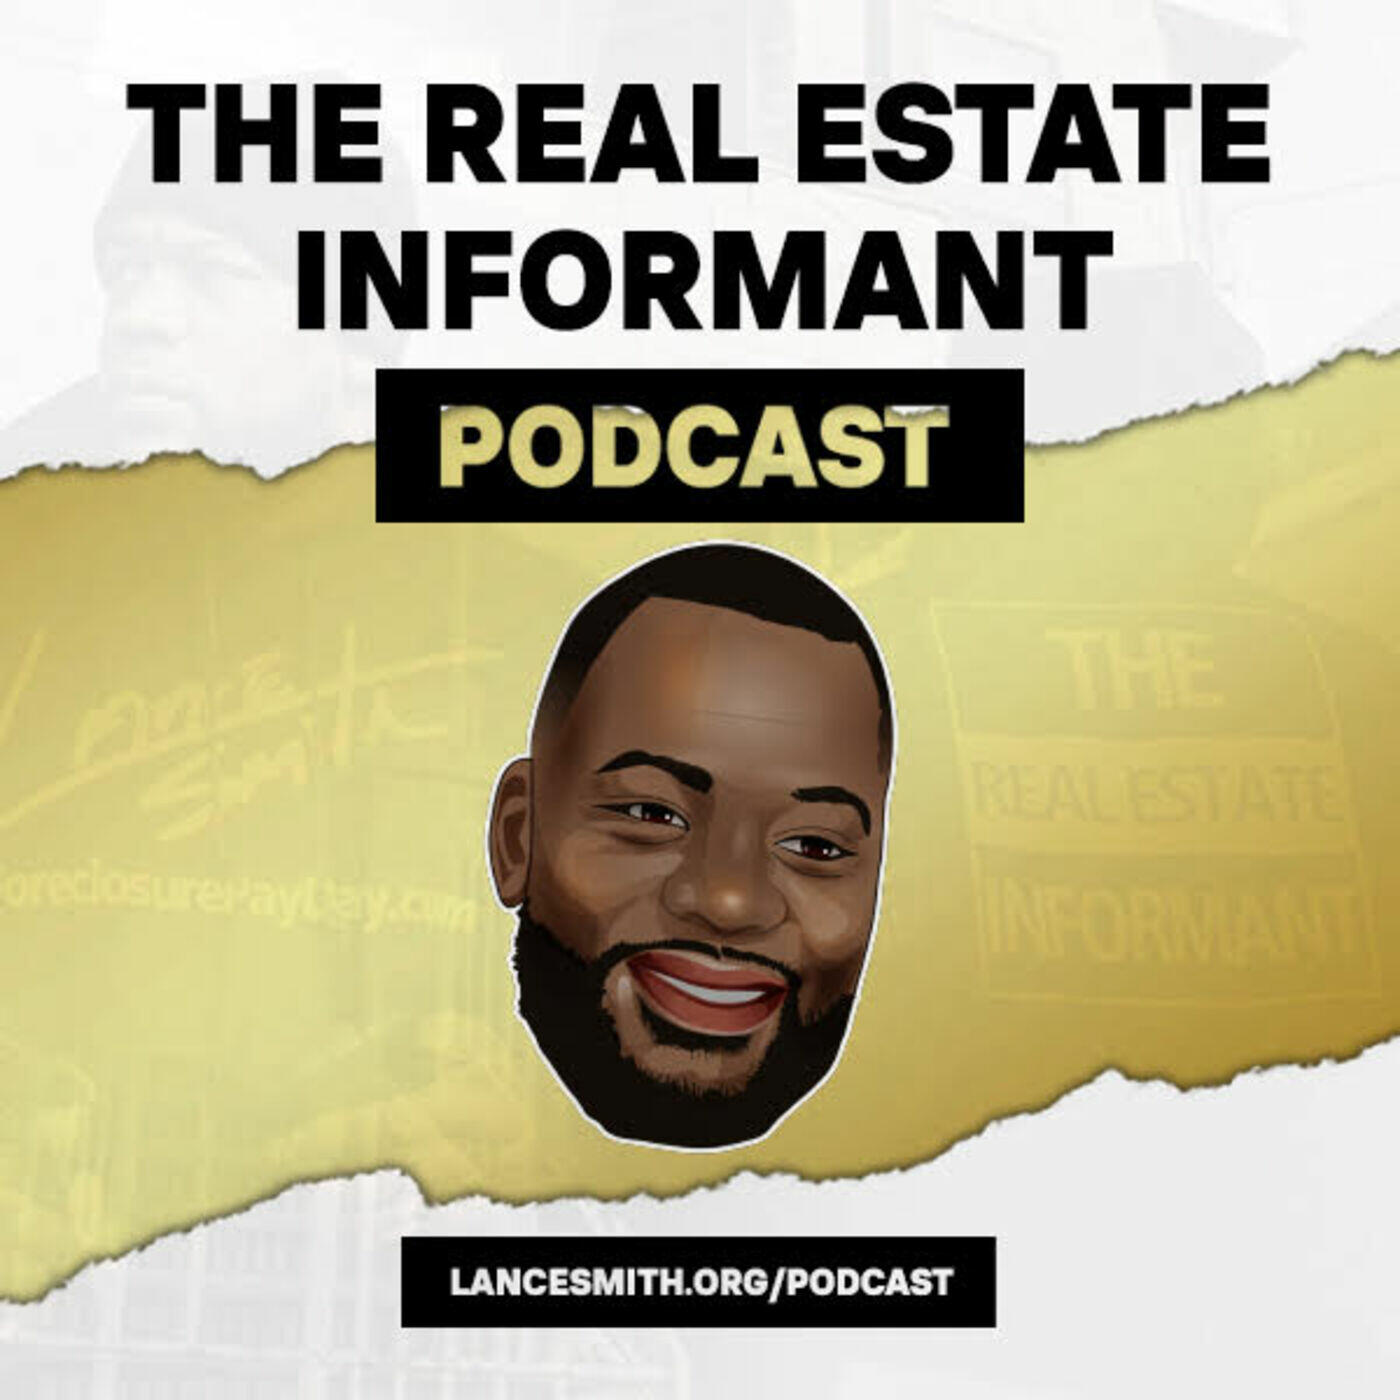 The Real Estate Informant Podcast